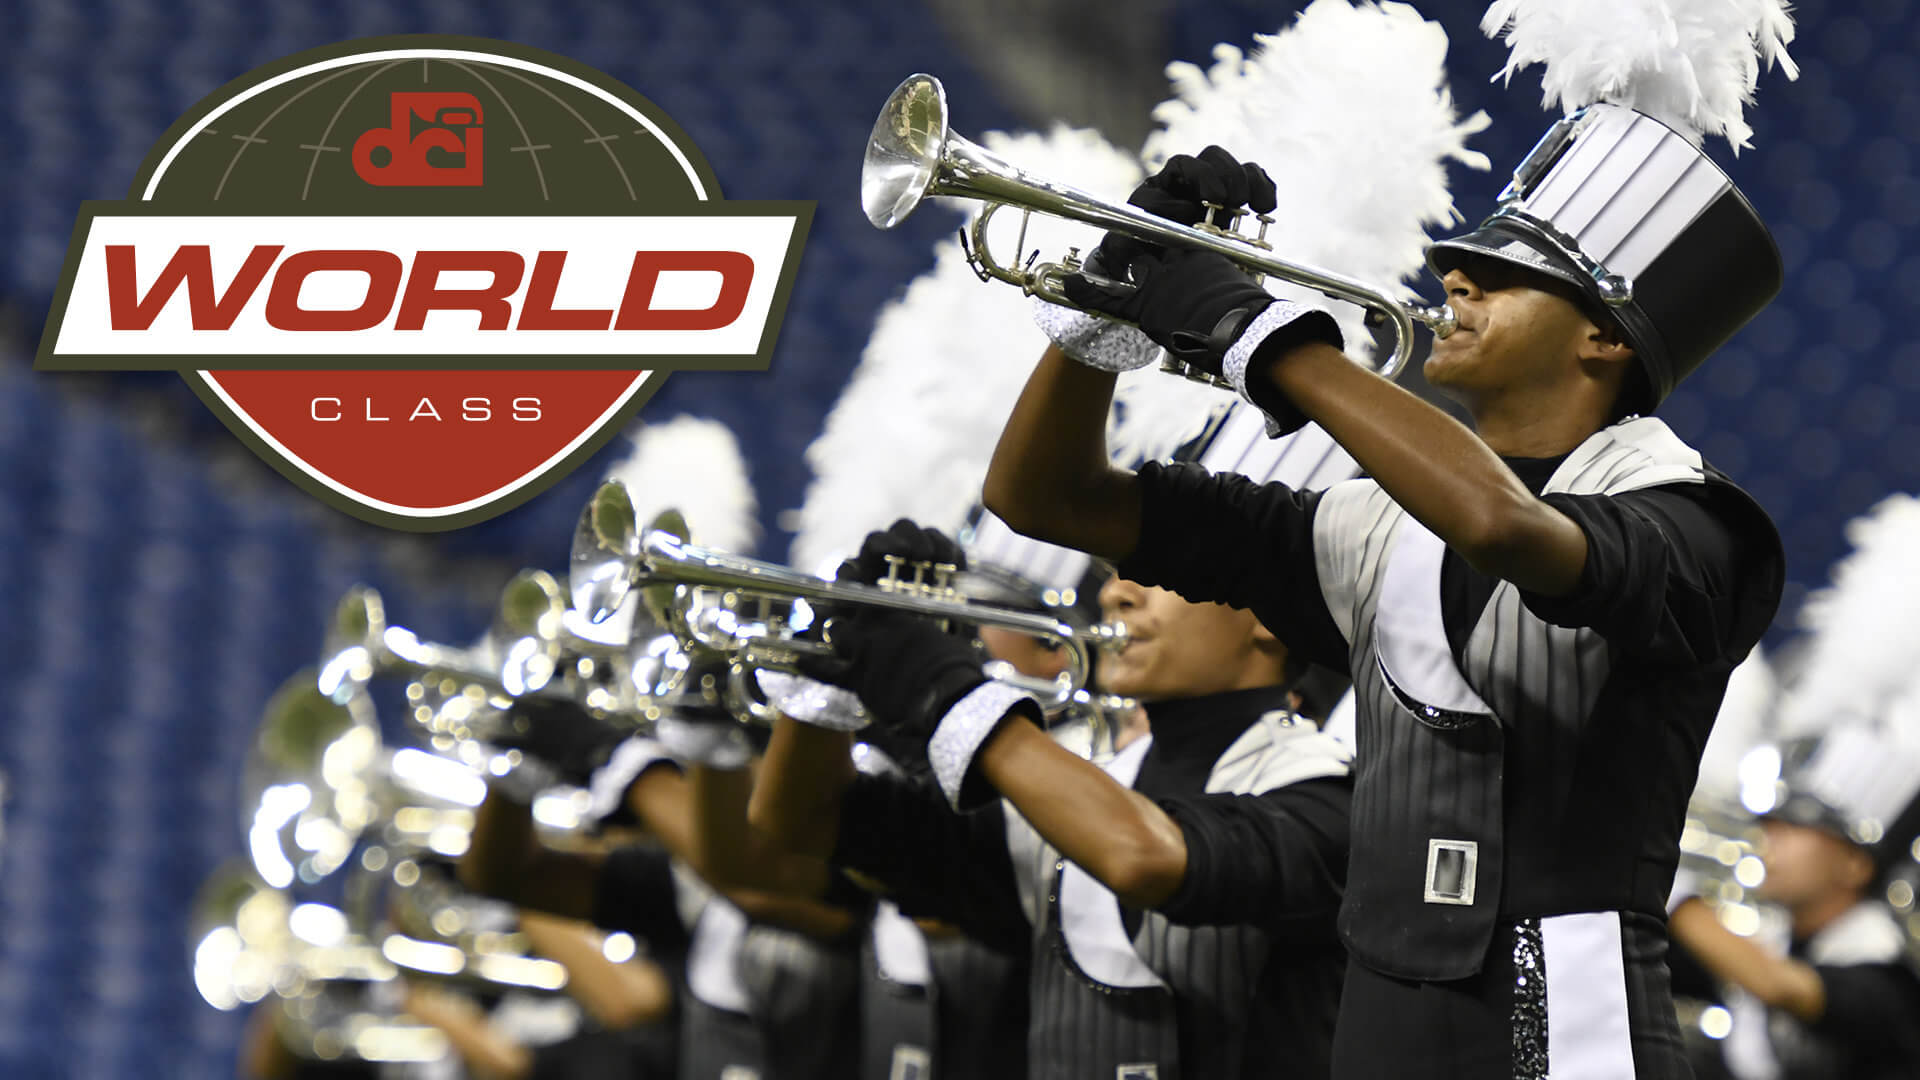 Austin, Texas' Genesis approved for World Class competition